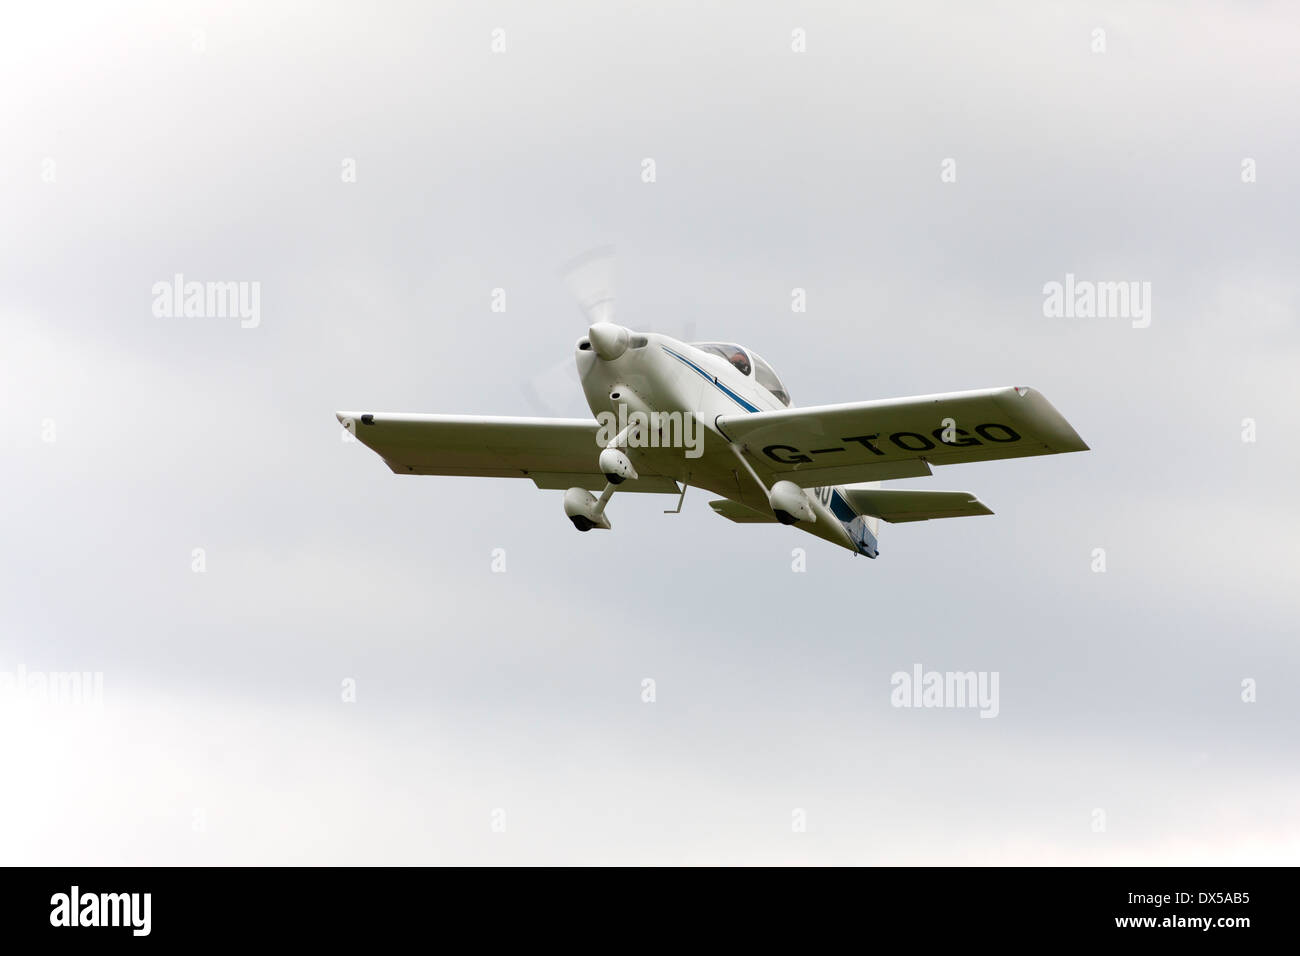 Vans RV-6A G-TOGO in flight taking-off from Breighton Airfield - Stock Image